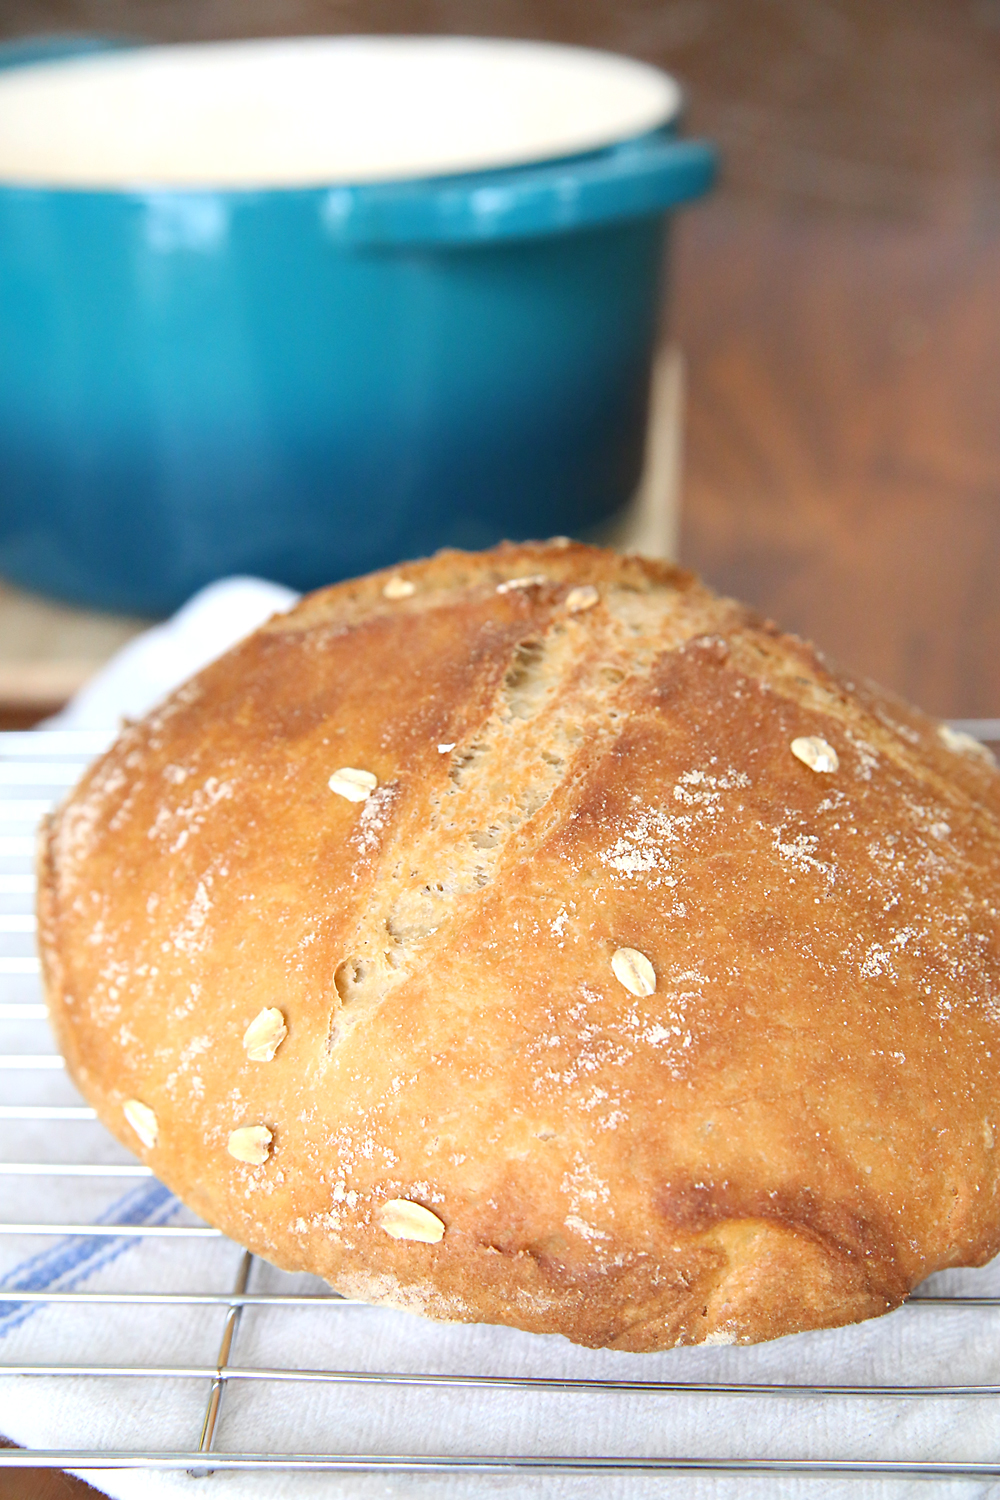 Loaf of crusty whole wheat artisan bread